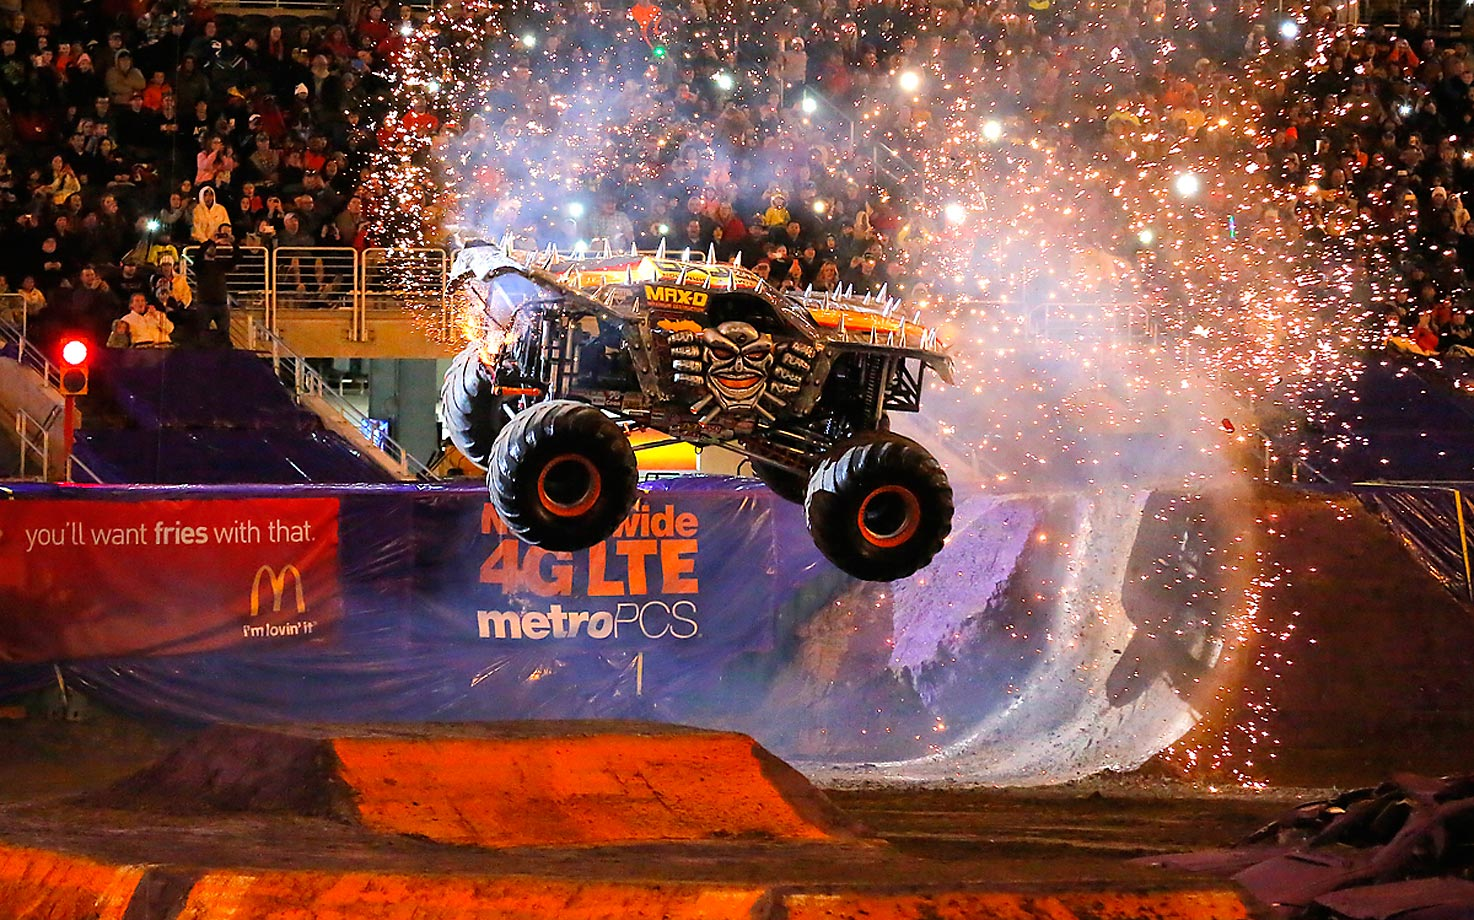 Maximum Destruction shows off a spectacular backflip during The Monster Jam at the Citrus Bowl in Orlando.